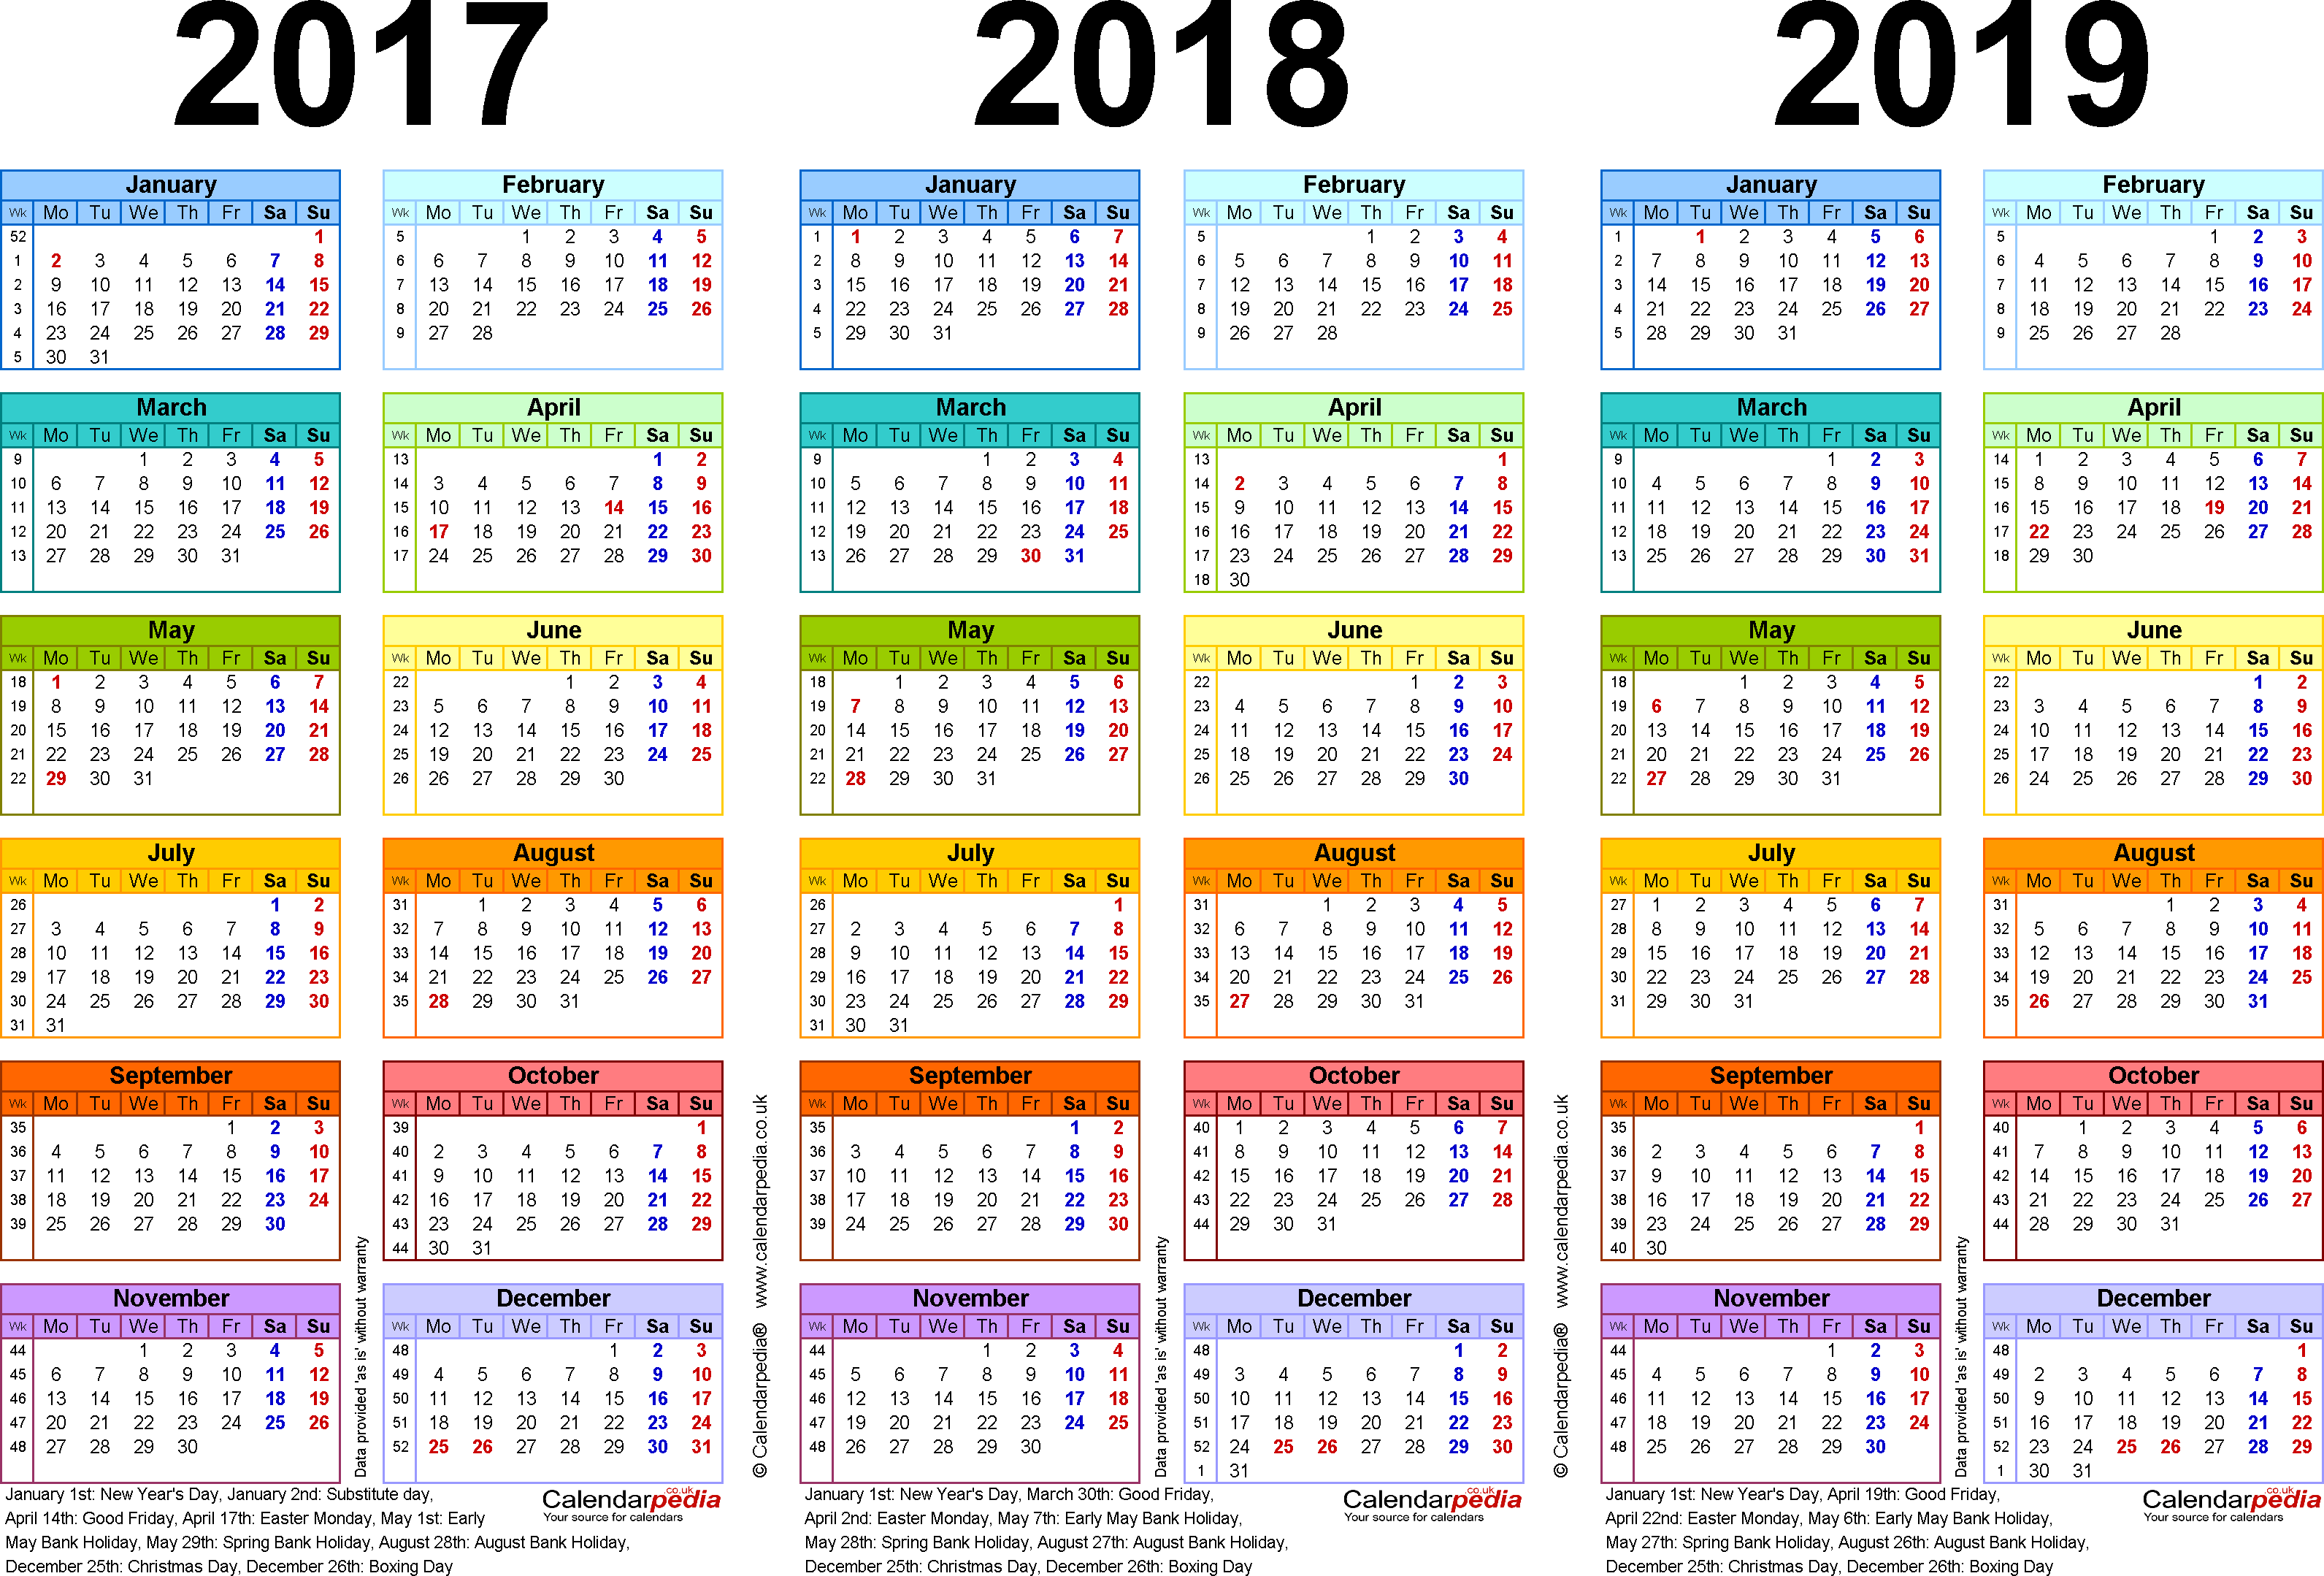 template 1 pdf template for three year calendar 2017 2019 in colour landscape